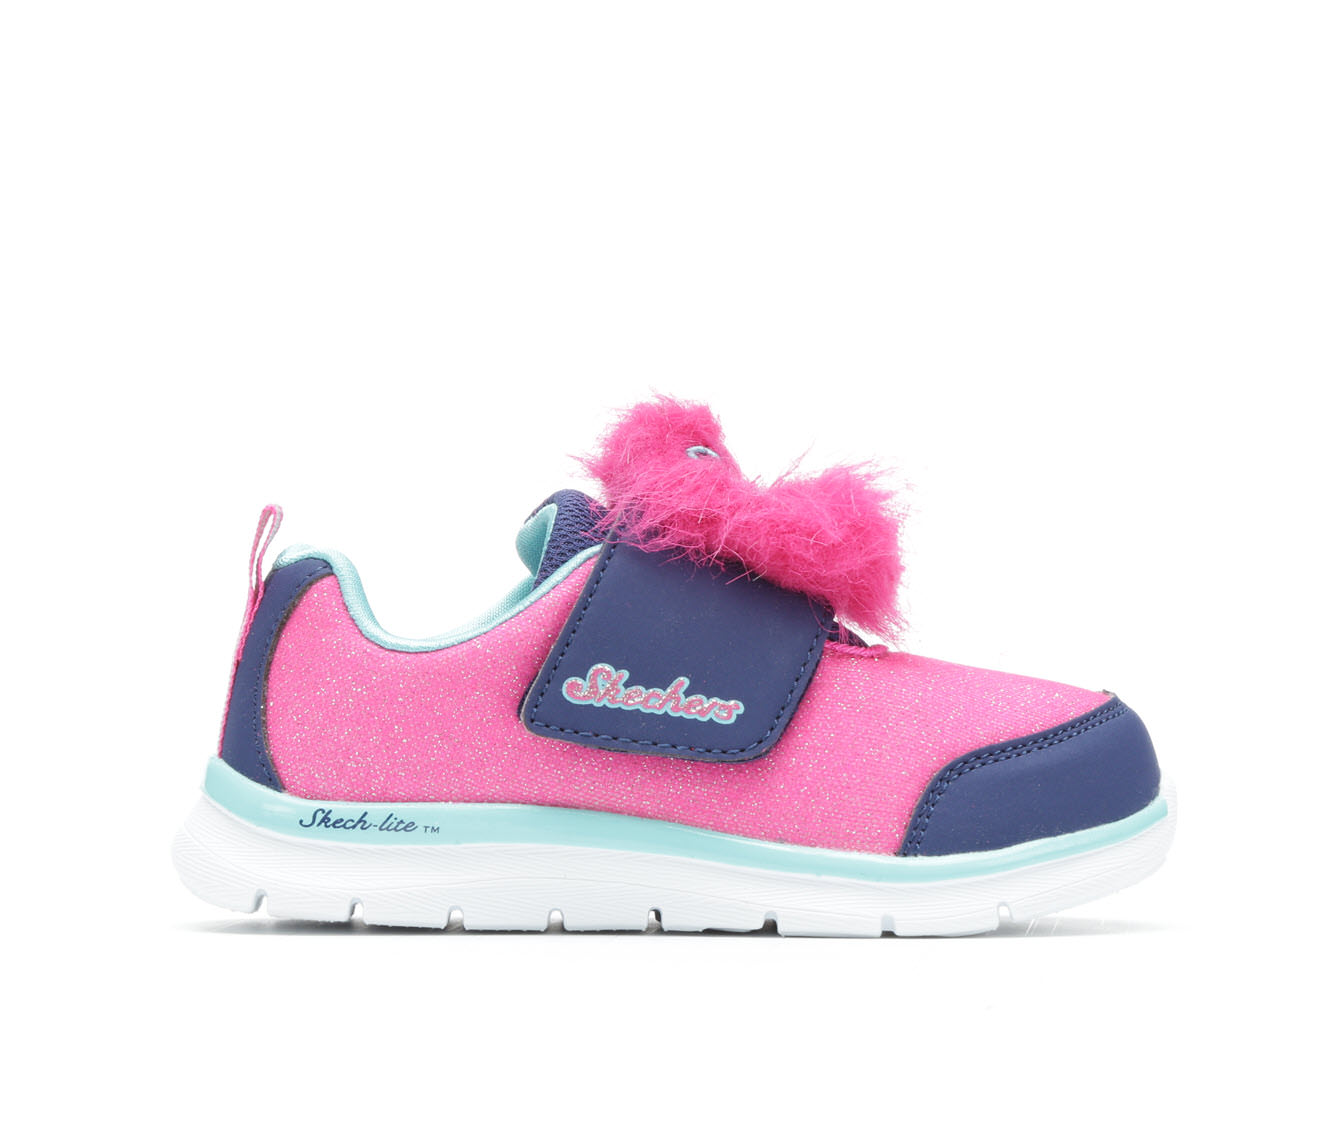 Girls' Skechers Infant Skech-Lite Furry- Lil Creature Sneakers (Pink)